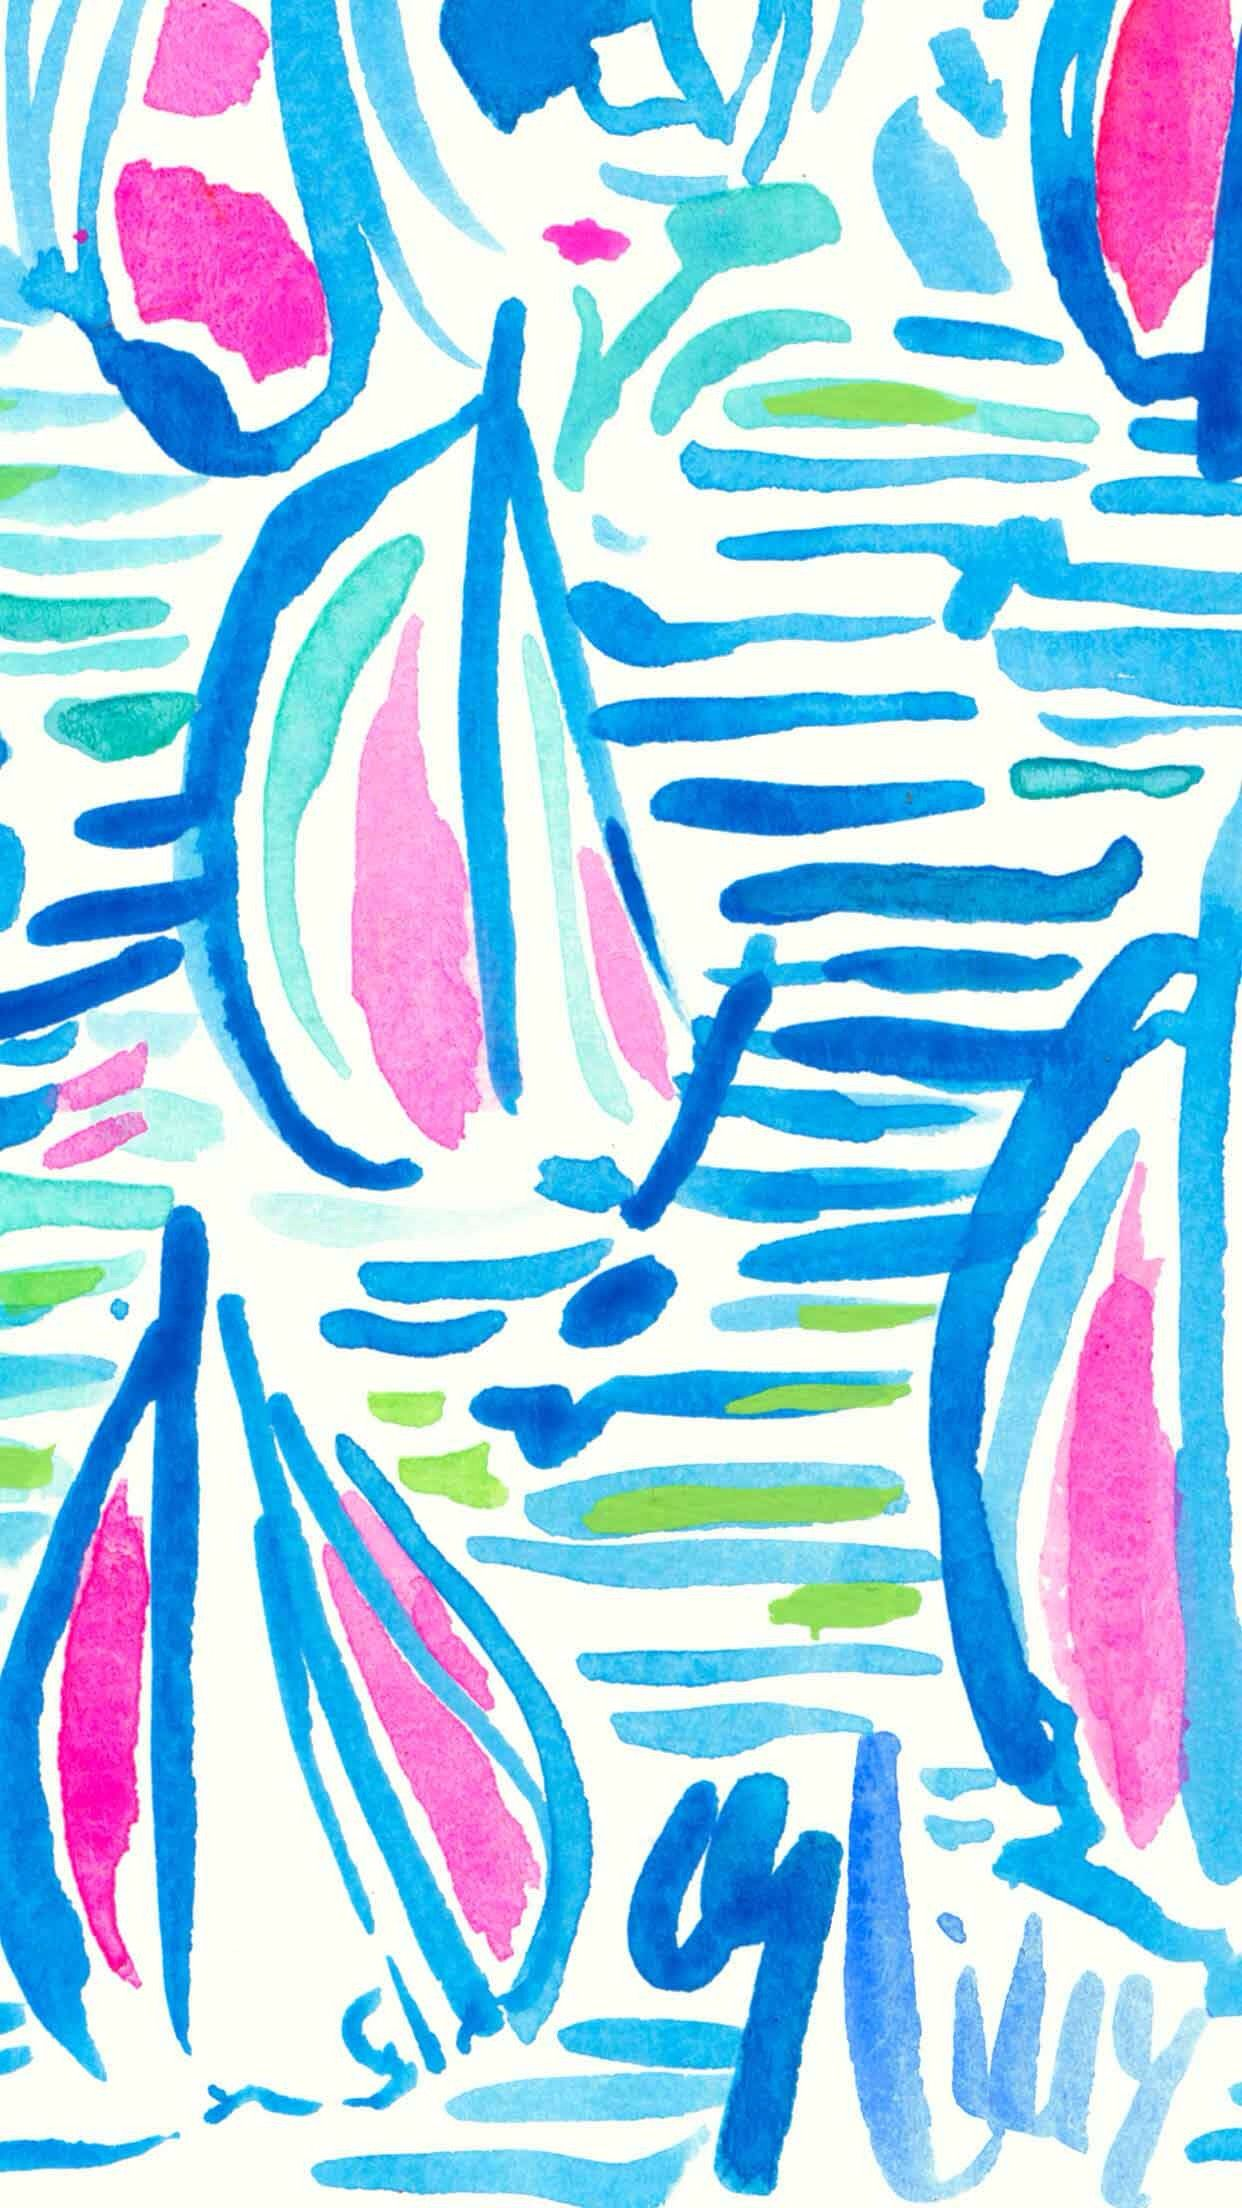 Smartly Lilly Pulitzer More Lilly Pulitzer Lilly Pulitzer Wallpaper Phone Lilly Pulitzer Wallpaper Iphone baby Lilly Pulitzer Wallpaper